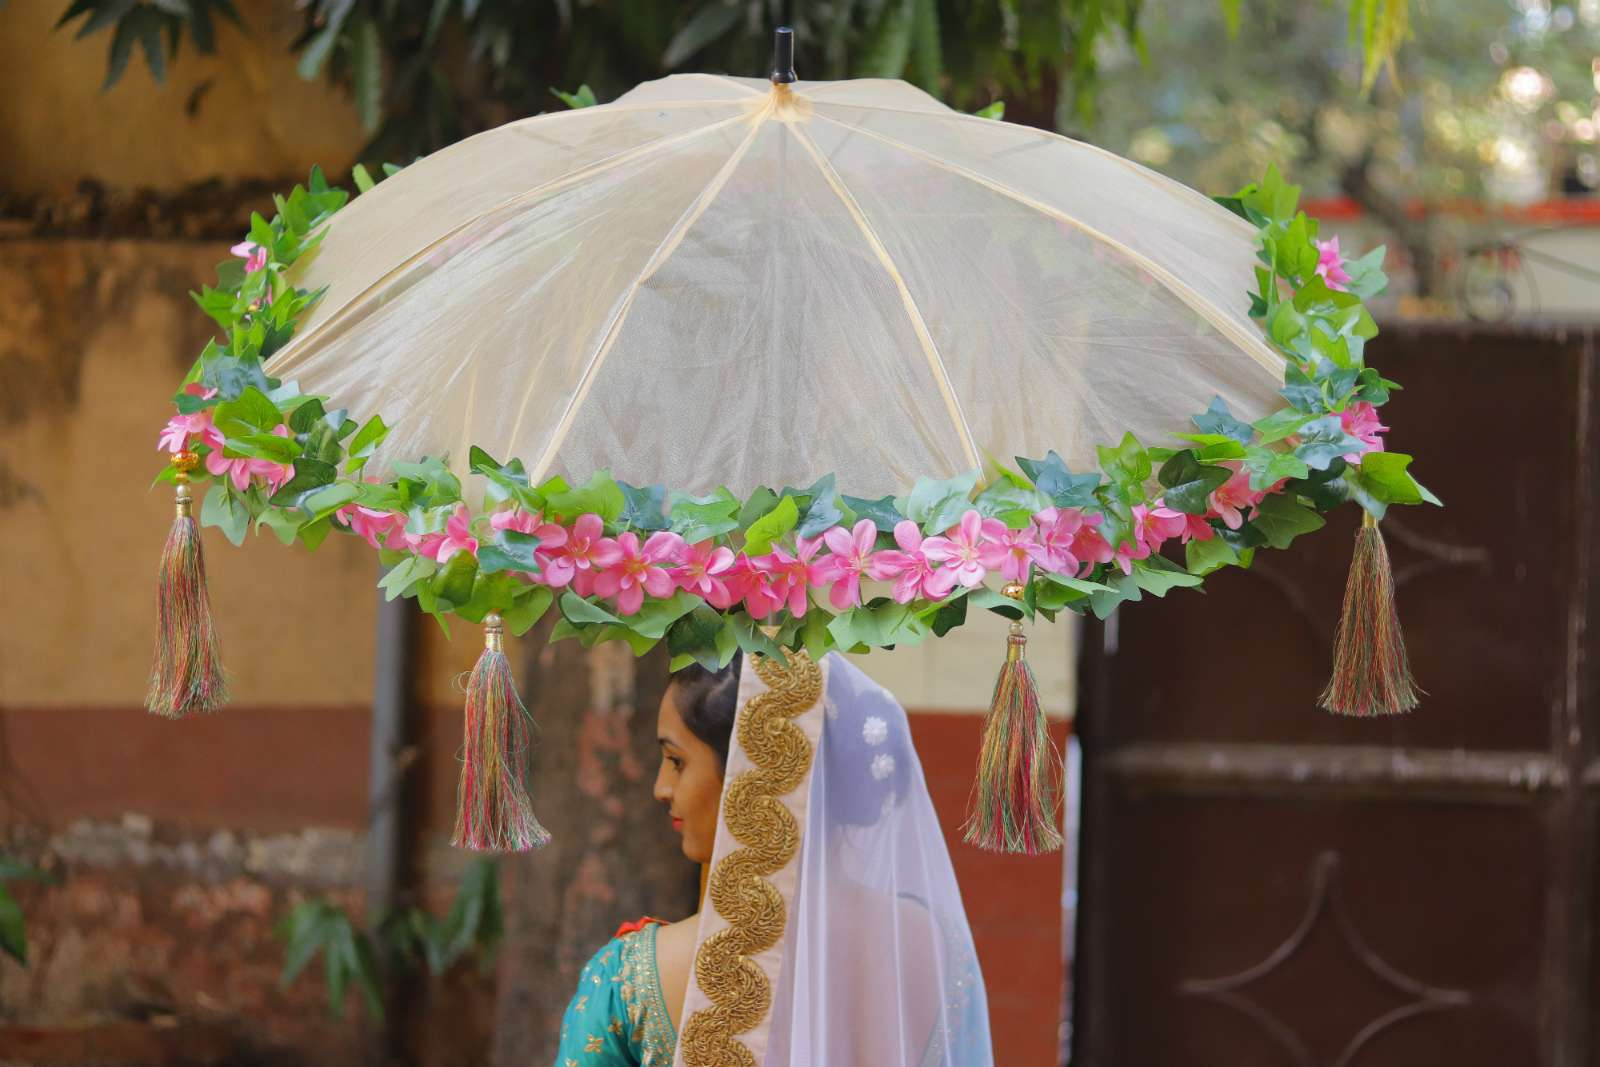 Bridal Entry Under Umbrella Shaadiwish